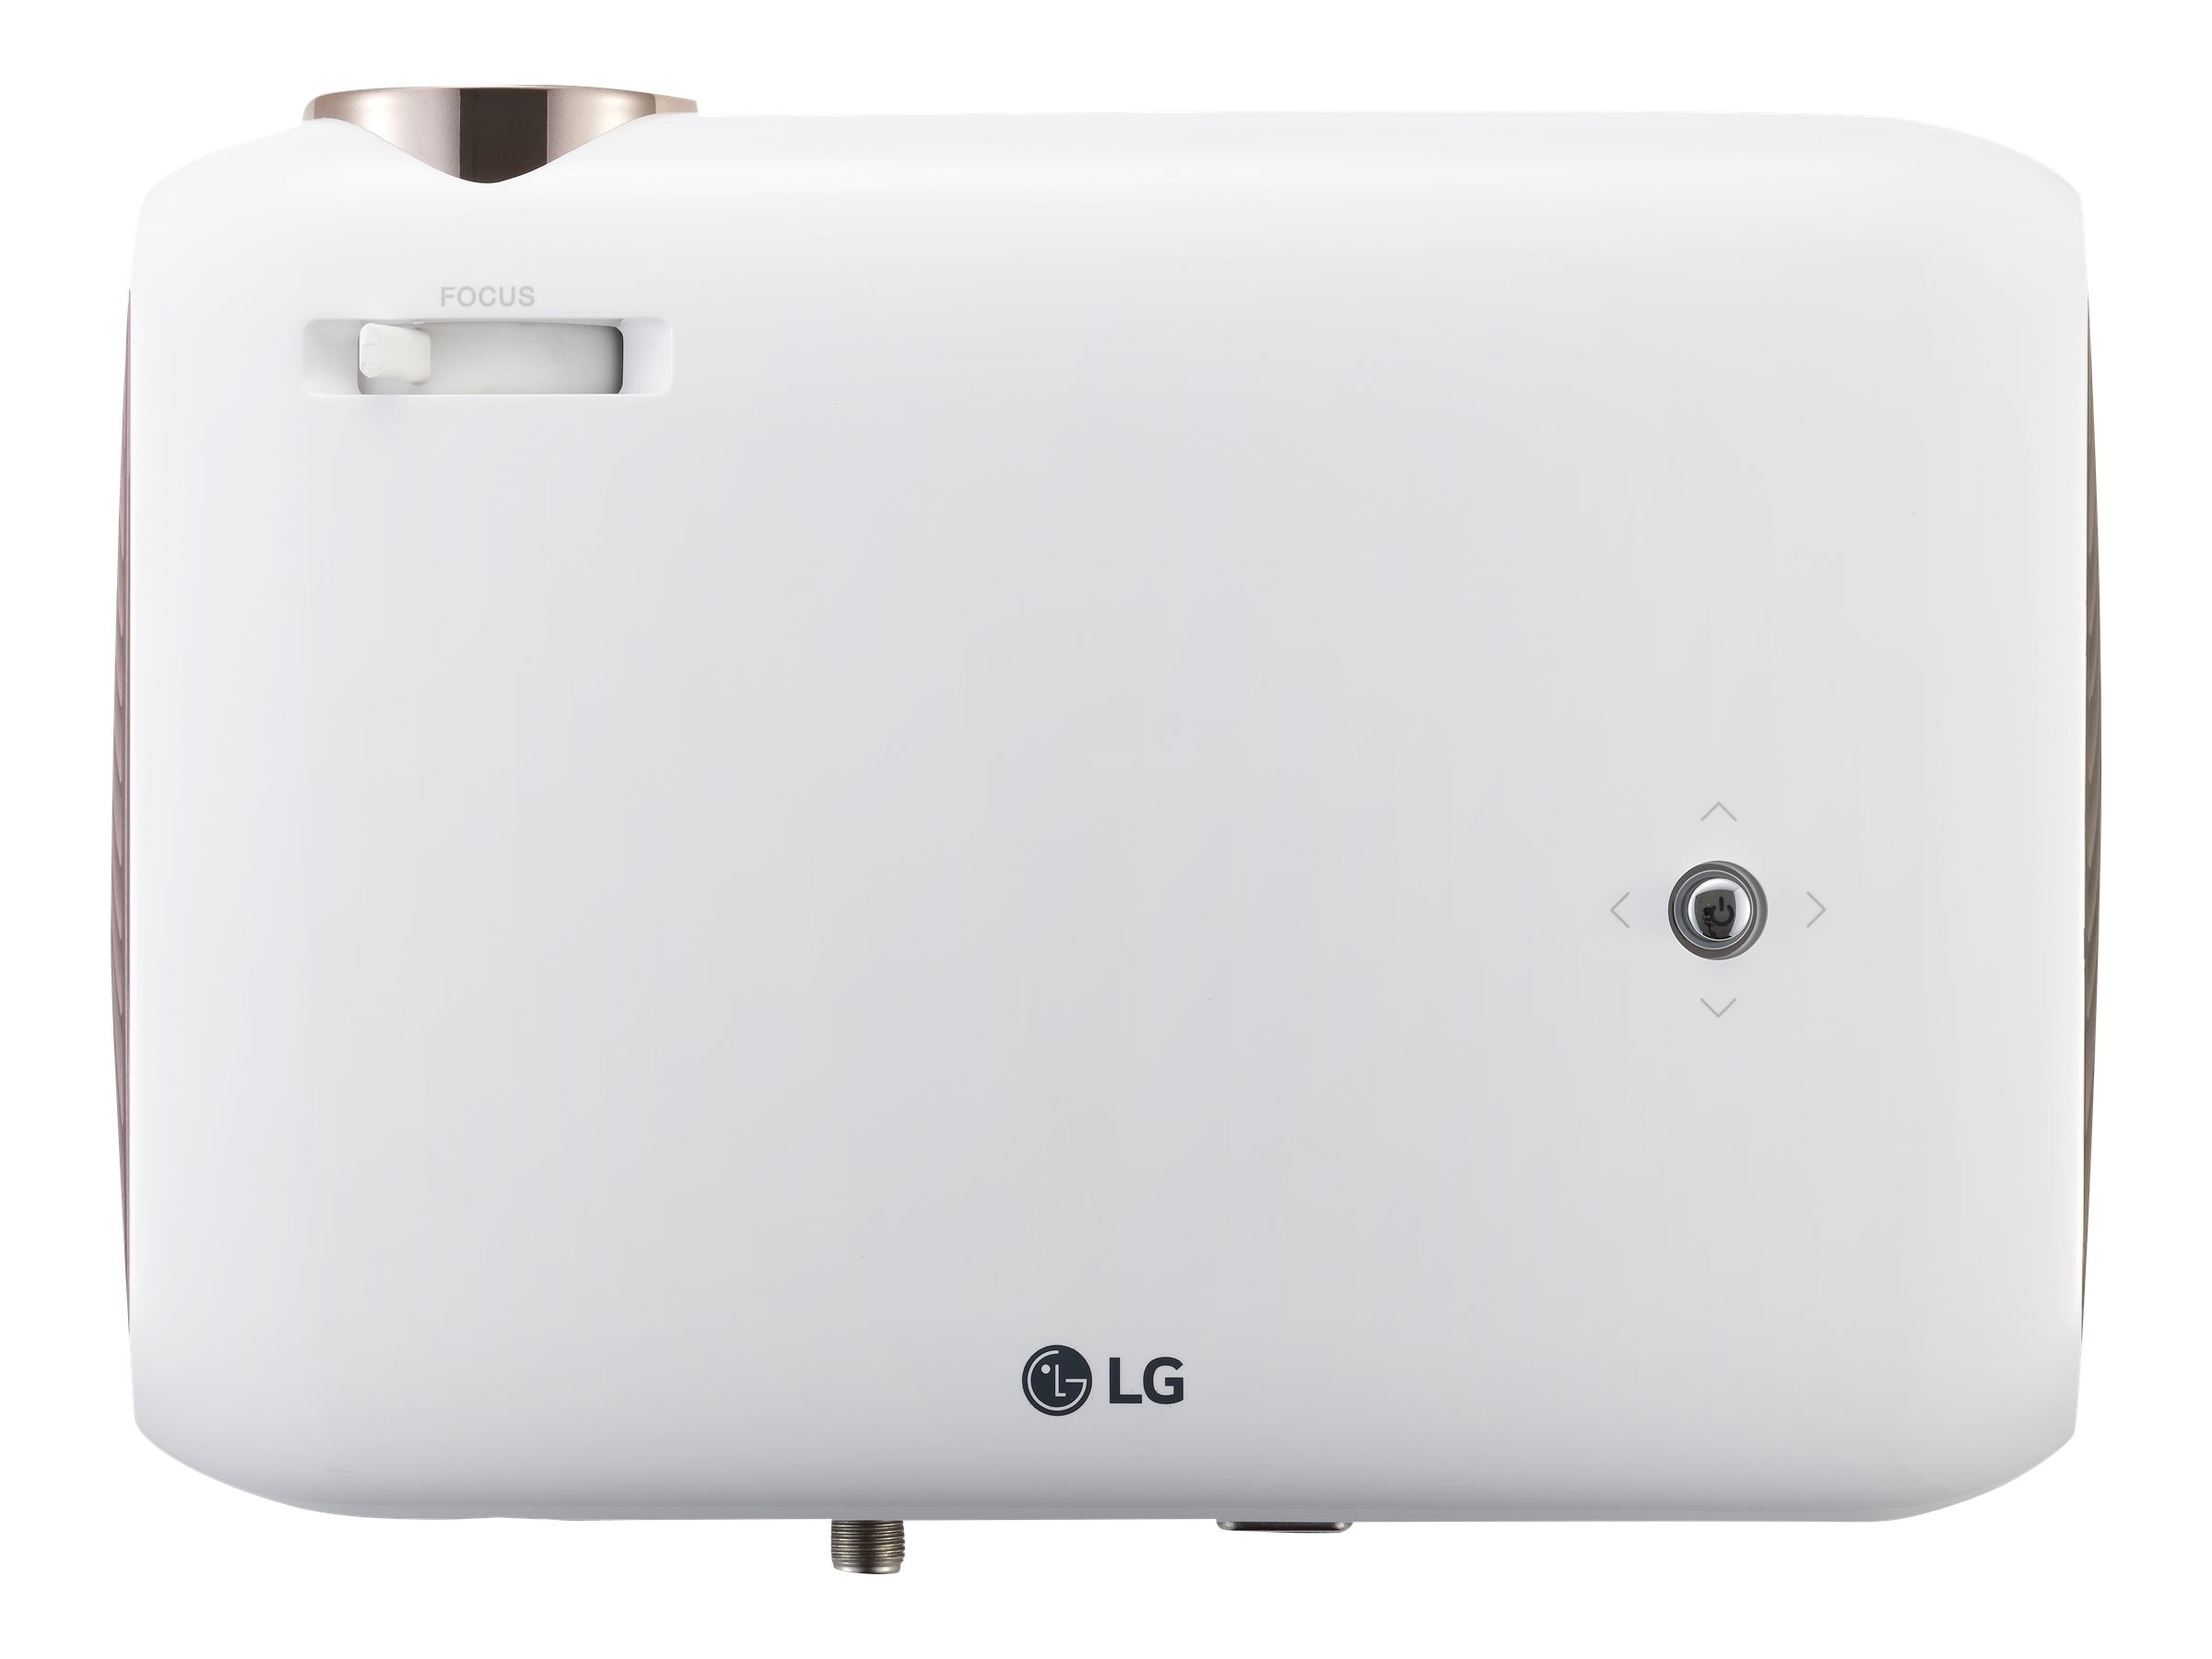 LG PW1500 WXGA LED Projector, 1500 Lumens, White, PW1500